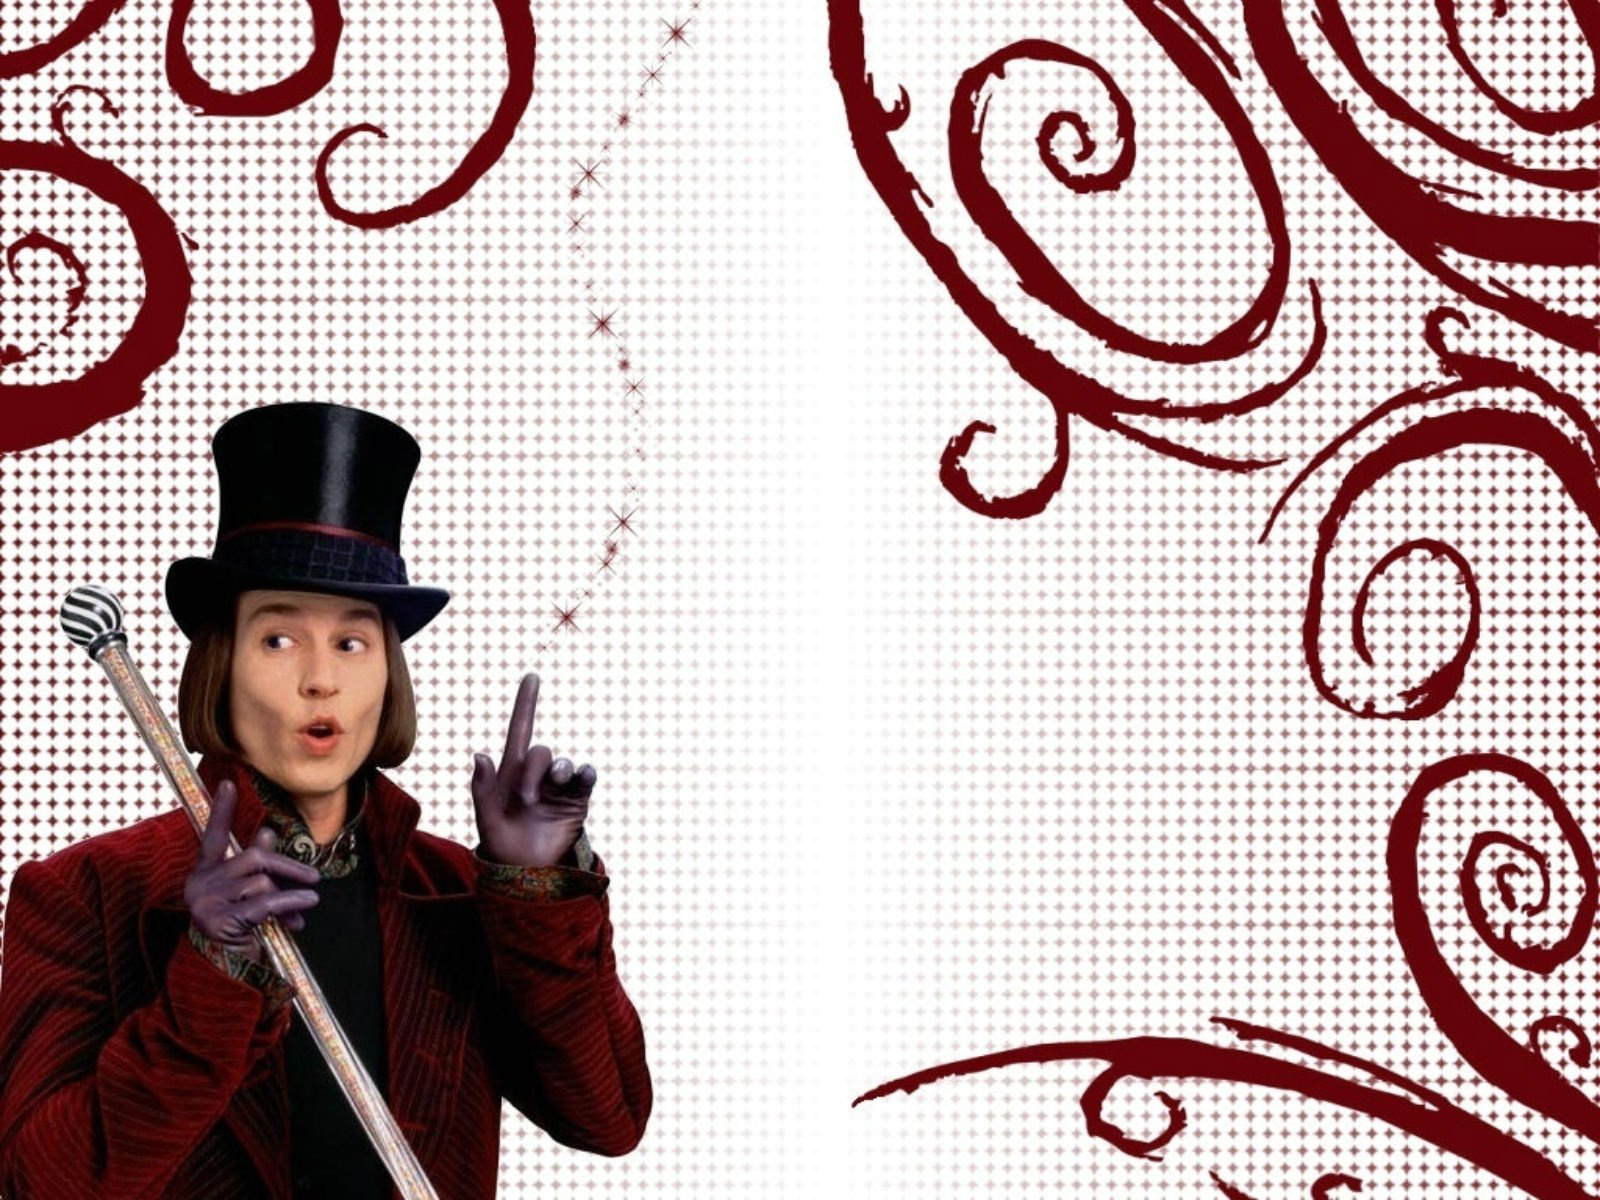 charlie chocolate factory depp adventure comedy family fantasy charlie chocolate factory depp adventure comedy family fantasy charlie chocolate factory musical 1600x1200 561773 up